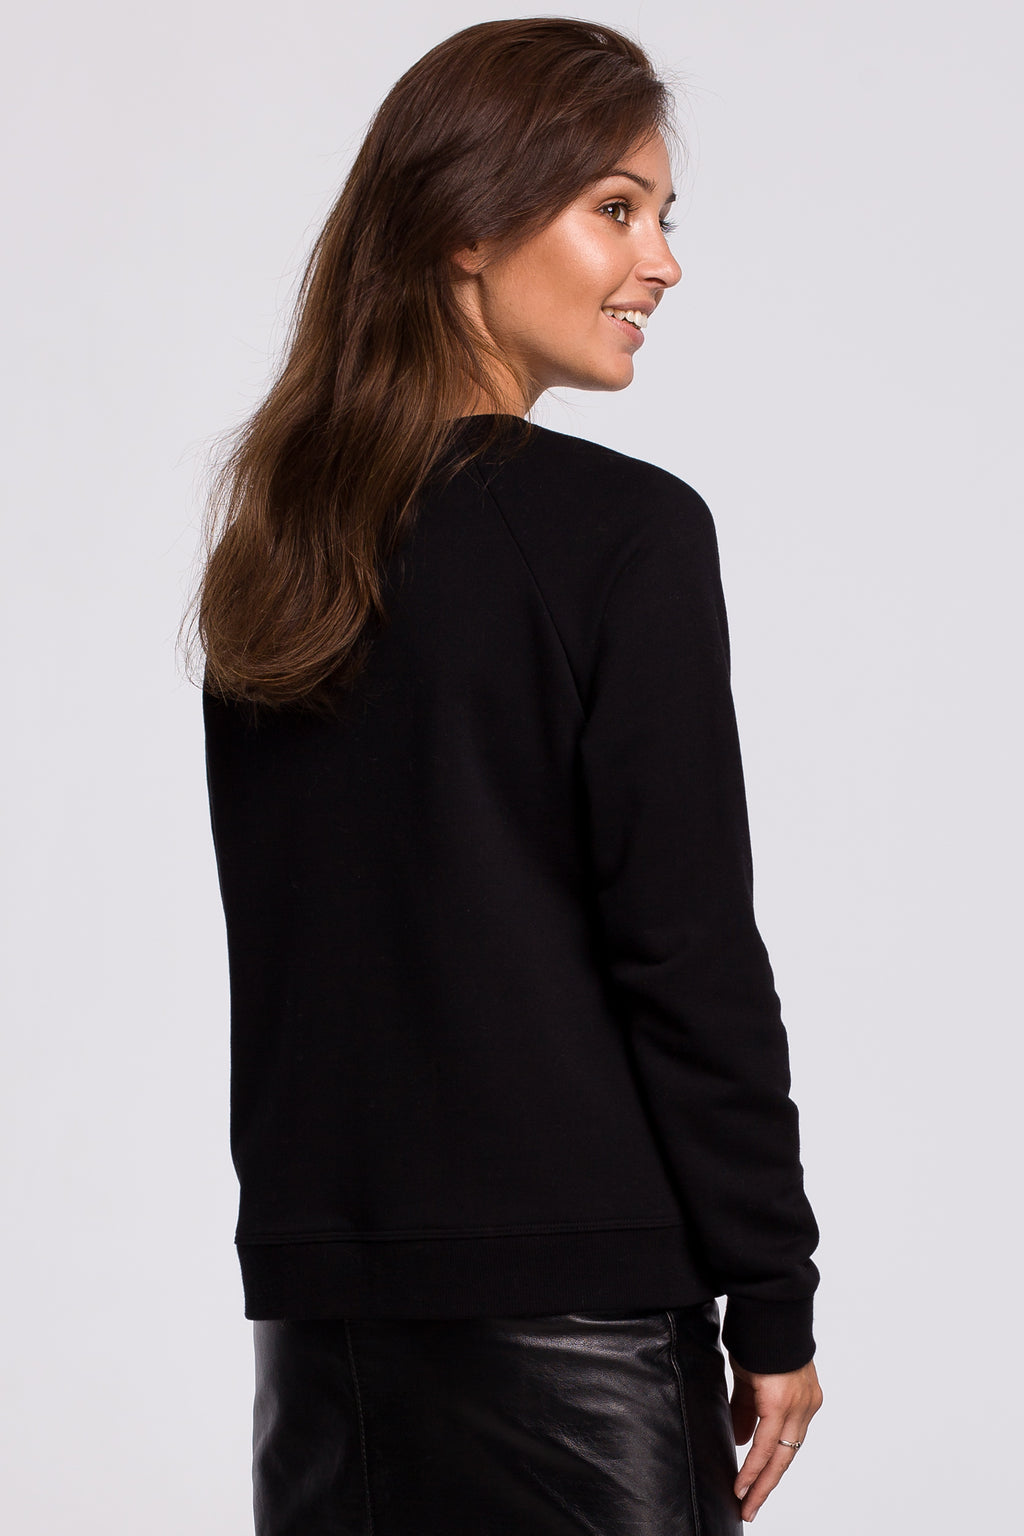 Black Sweatshirt With A Print - So Chic Boutique